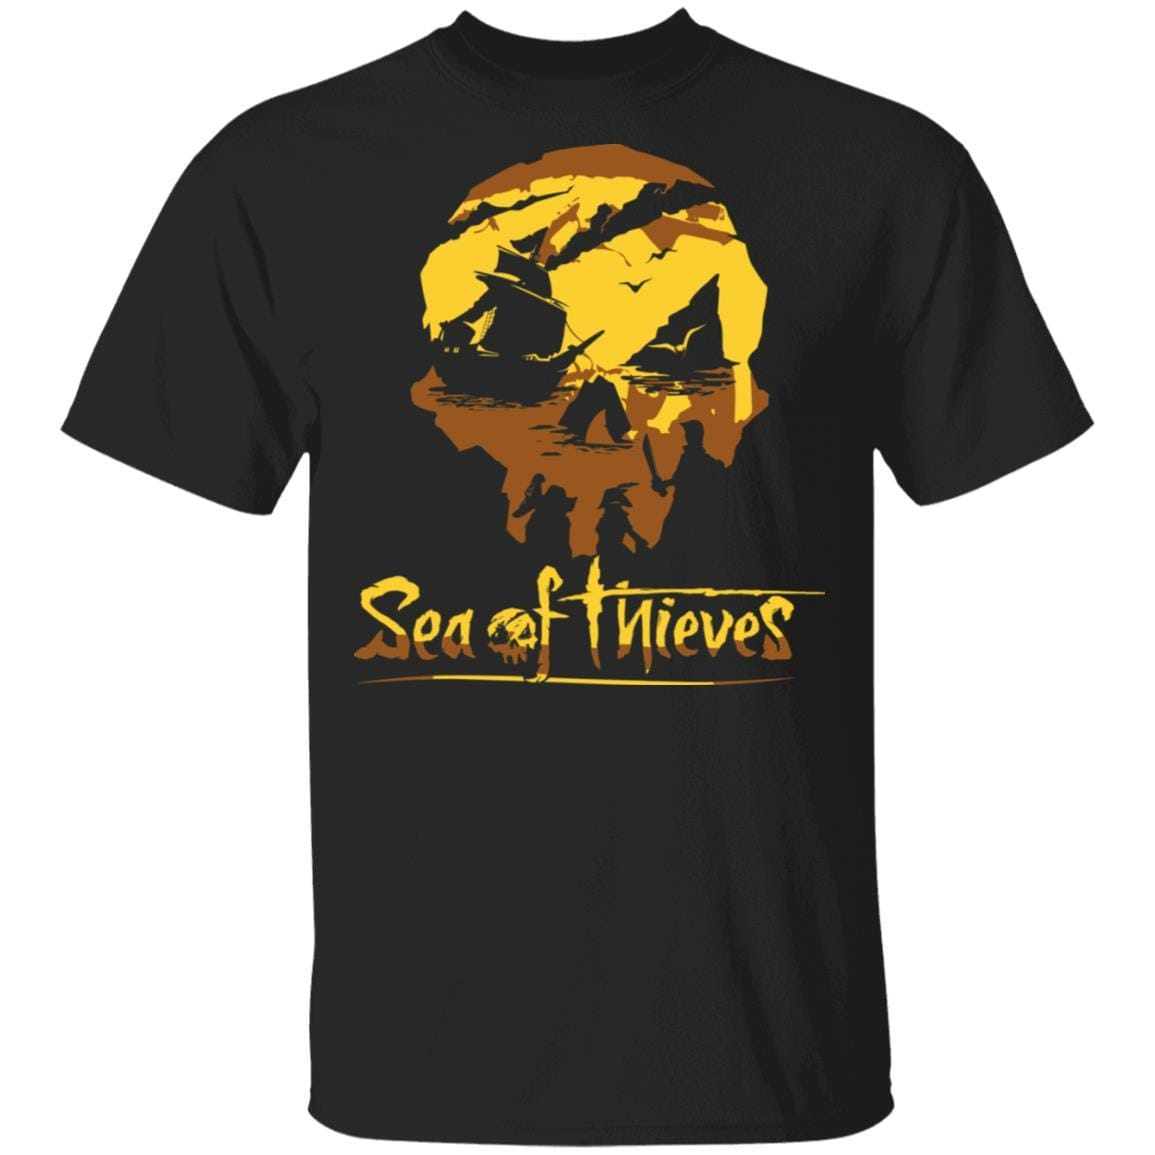 Sea Of Thieves T-Shirts, Hoodies 1049-9953-92947925-48144 - Tee Ript